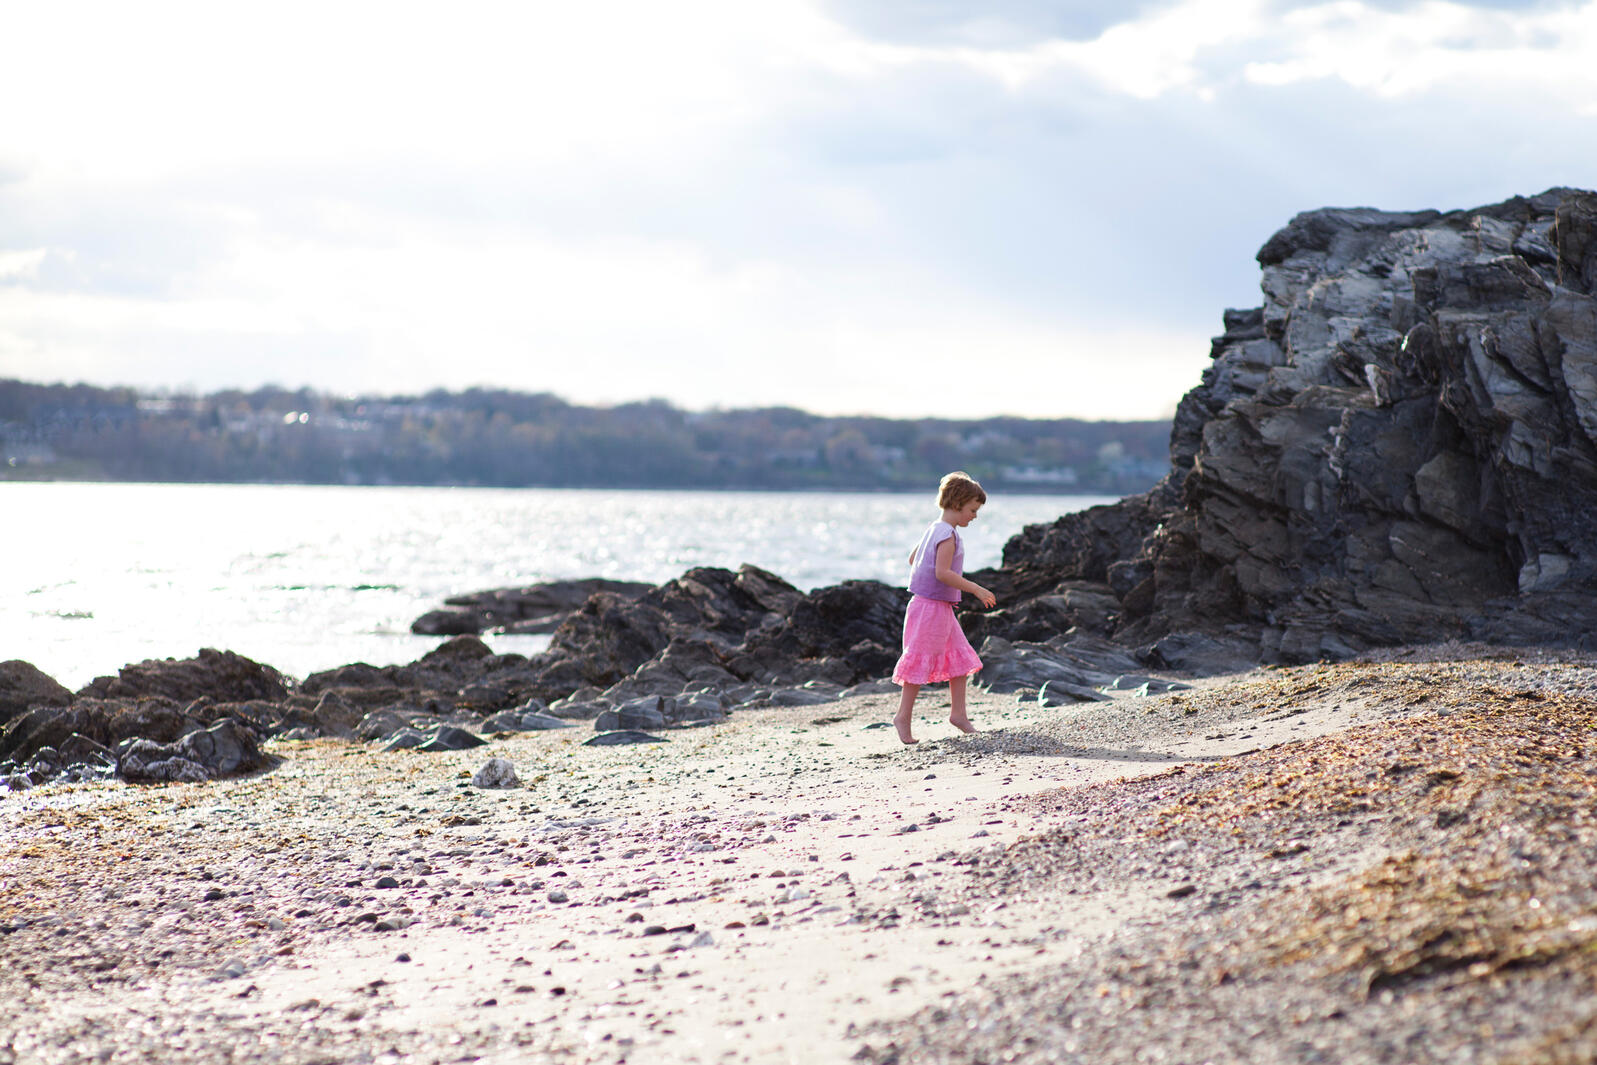 Five-year-old Shannon Freeman explores the wilds of Rhode Island. Joseph Laurin Photography